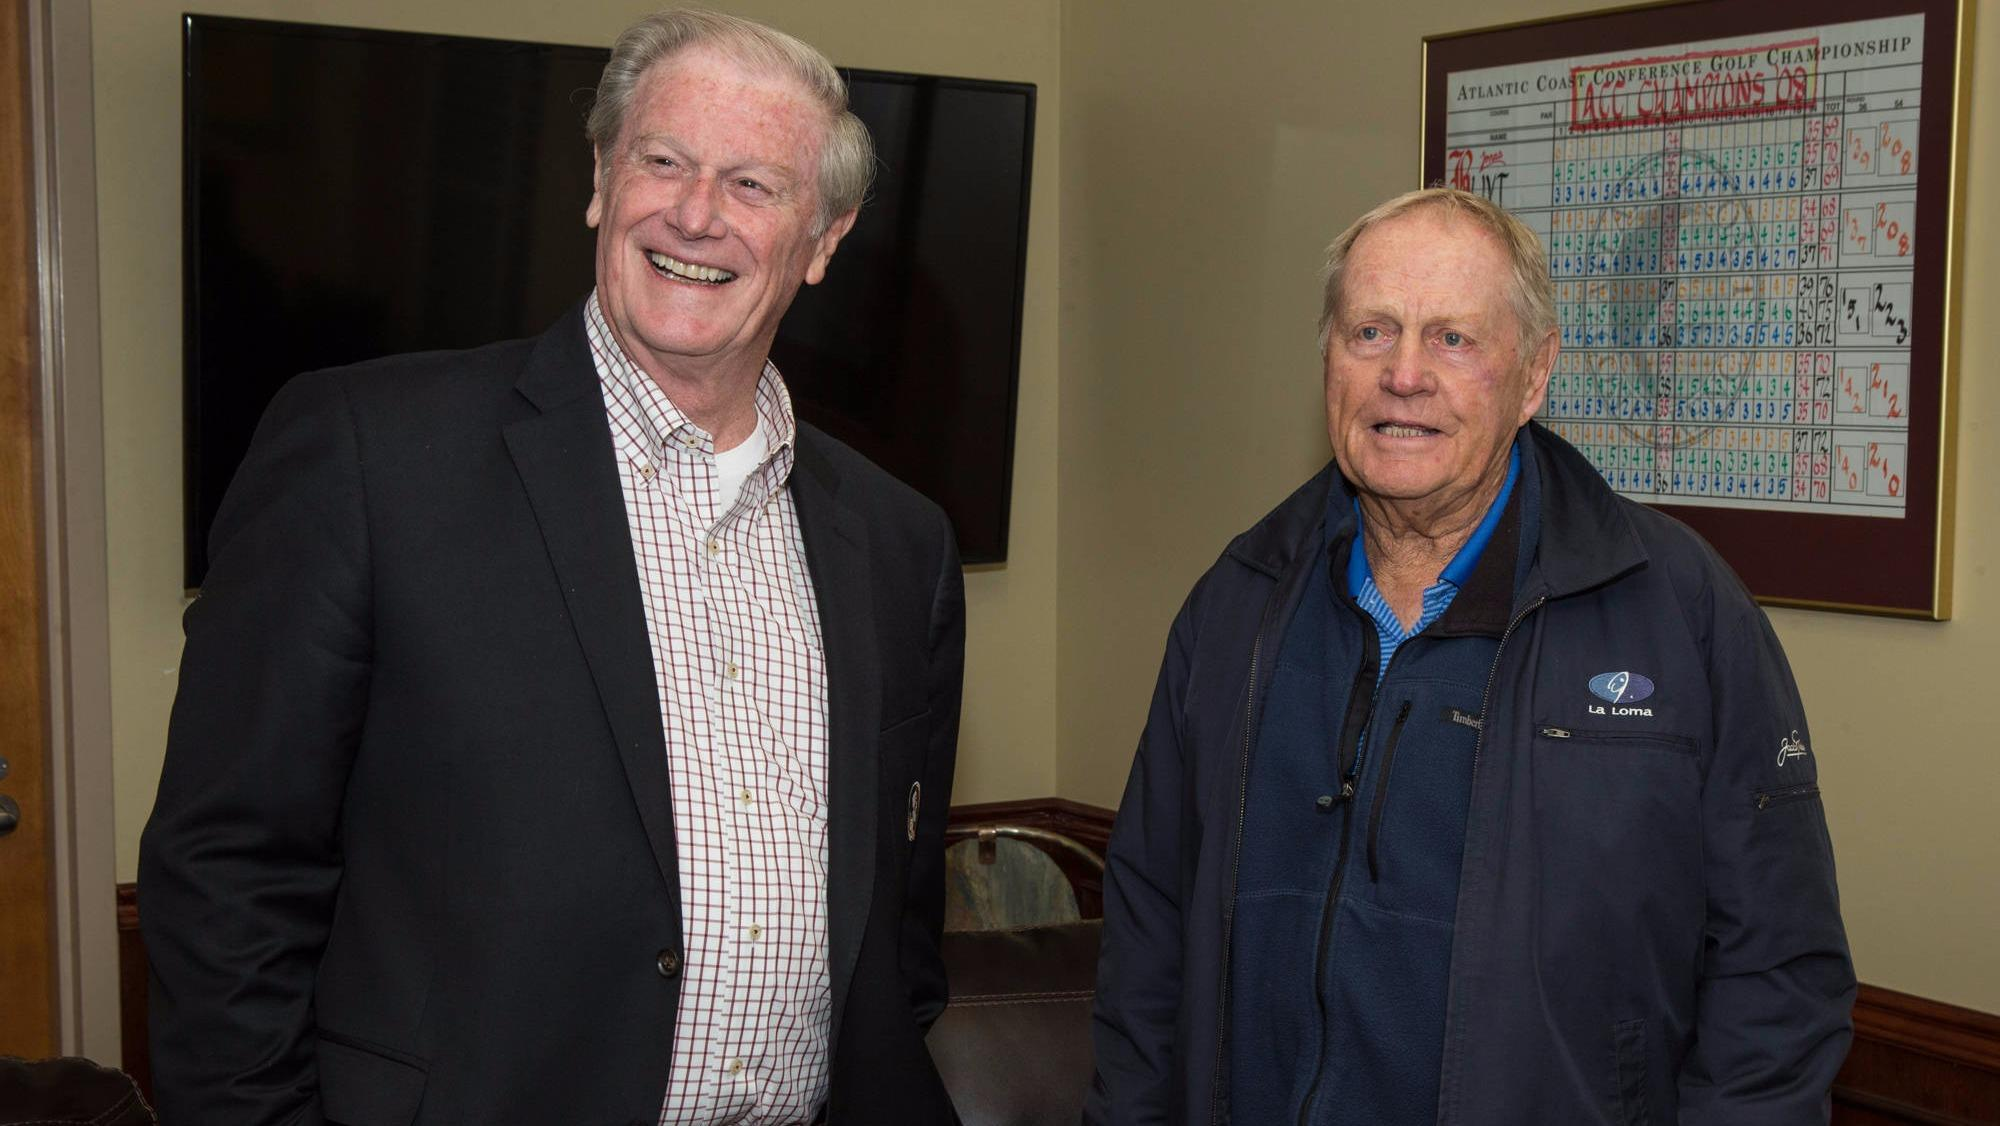 Jack Nicklaus meets with Florida State University President John Thrasher